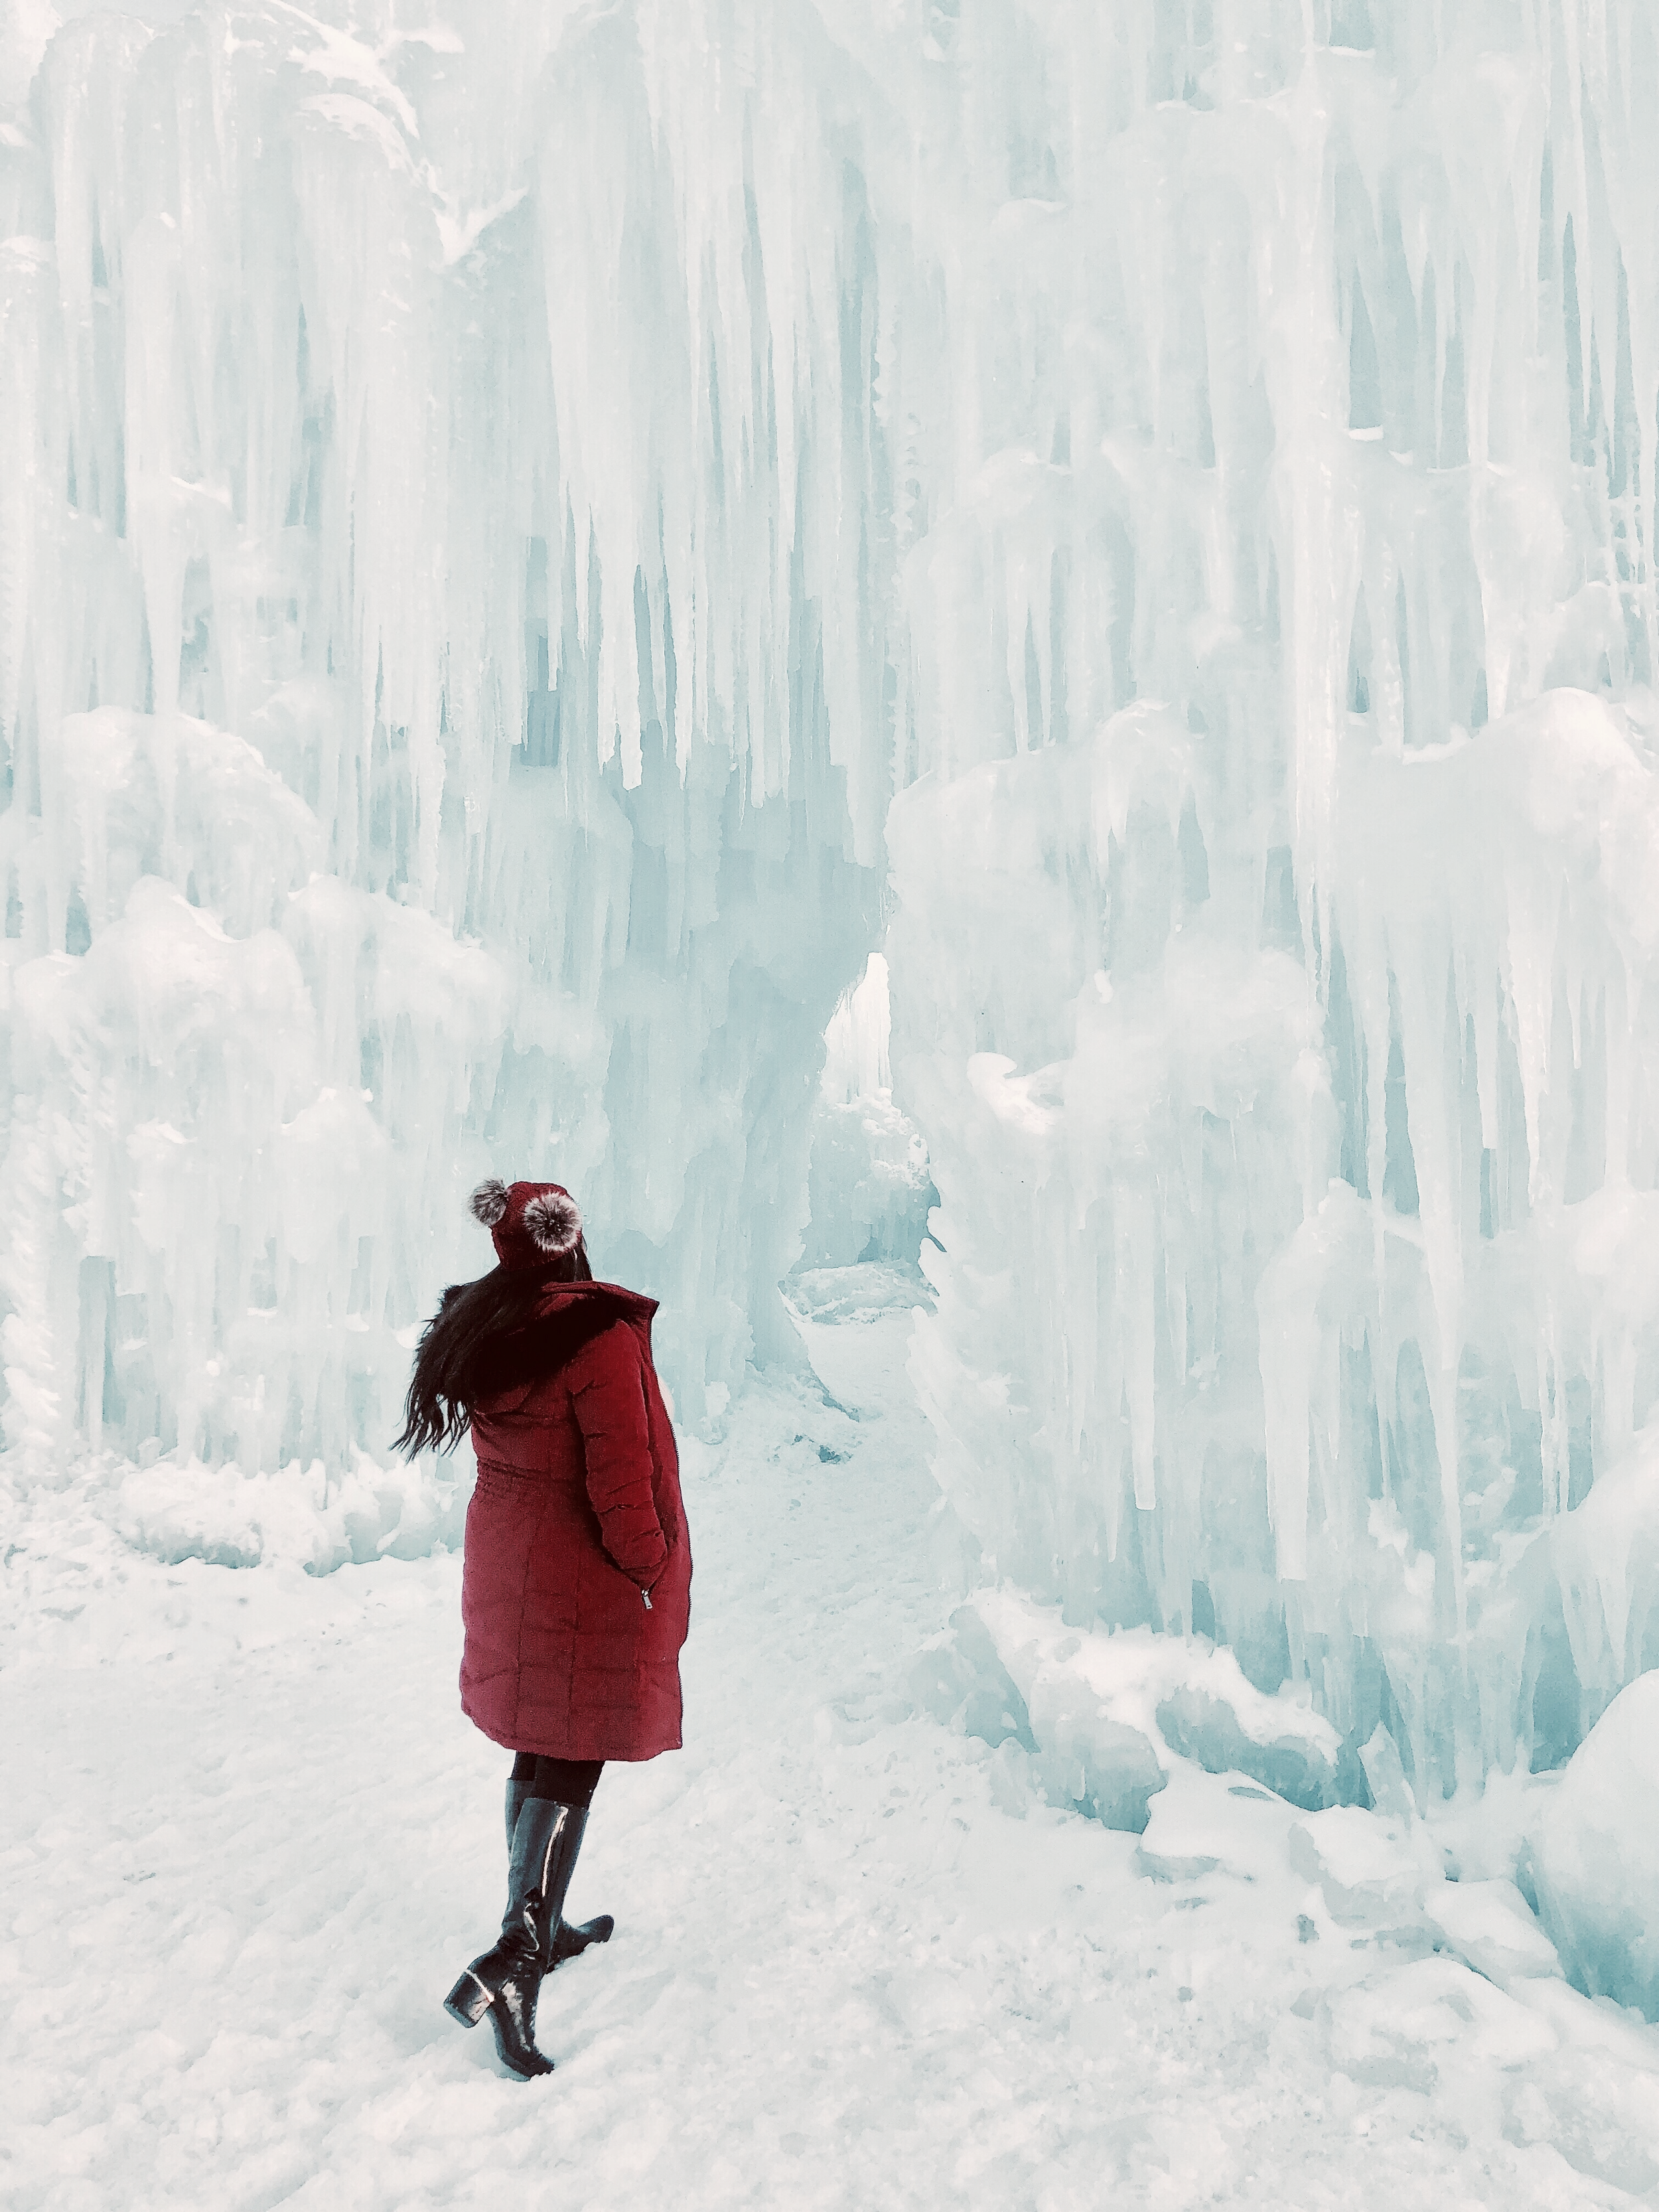 DILLON - Did someone say ICE CASTLES! This small town is the first of six in North America to open this year. Ice artisans have been building the castles since mid-November, using 25 million pounds of Ice. The Craftsmanship was incredible, solely made out of icicles and water.Check out the ice castles all over the country!https://icecastles.com/